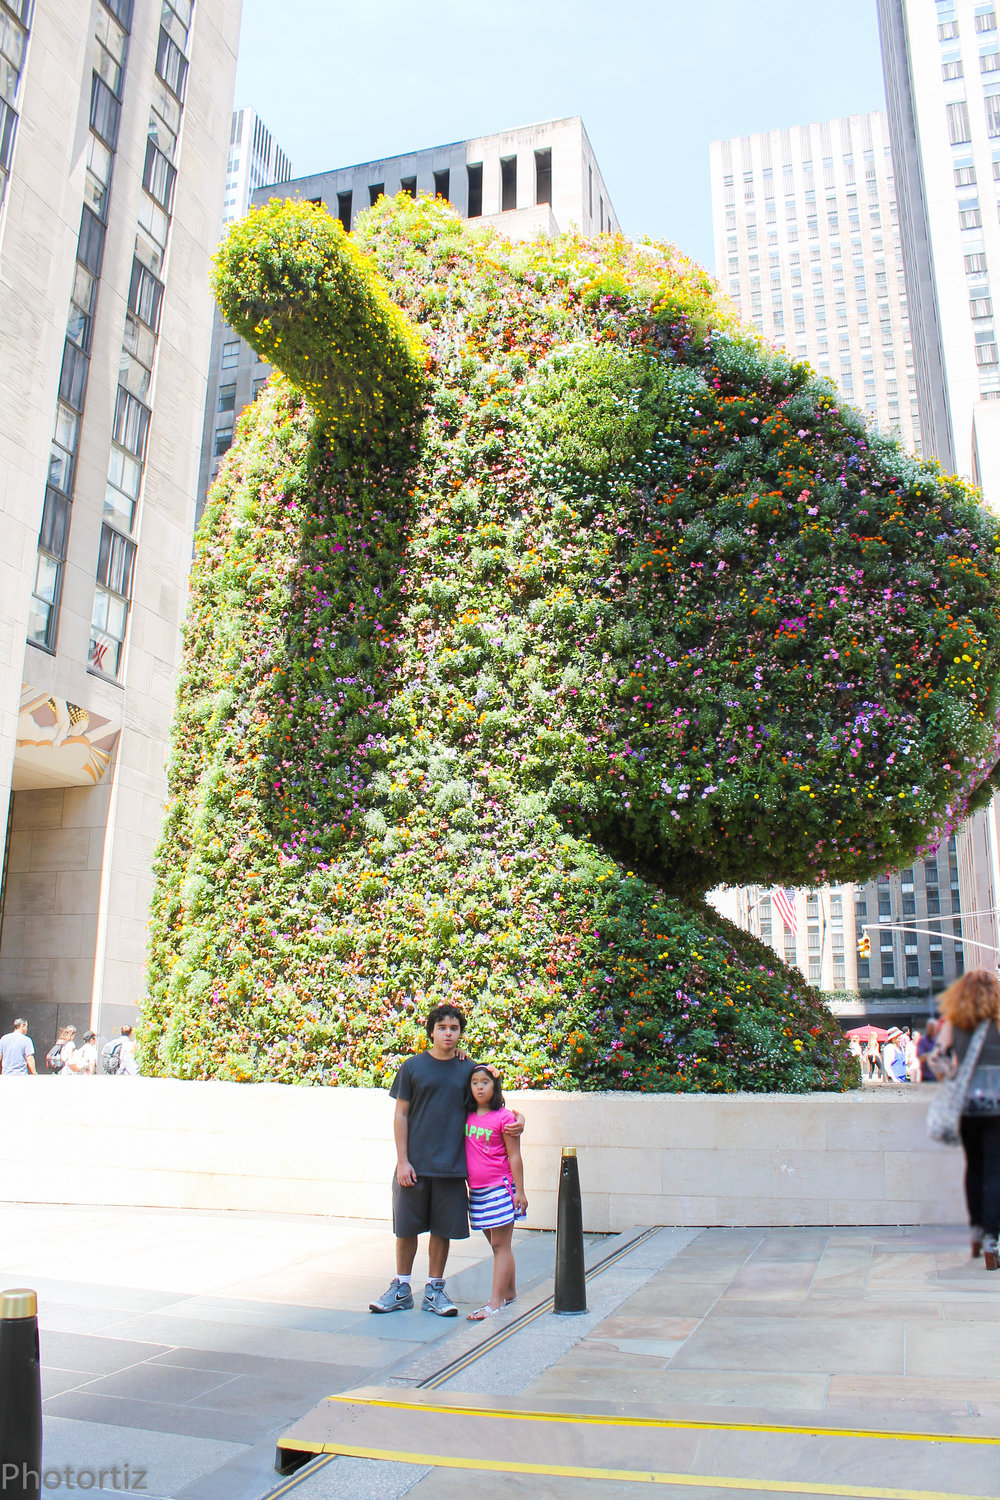 At the time, there was this sculpture from artist Jeff Koons.